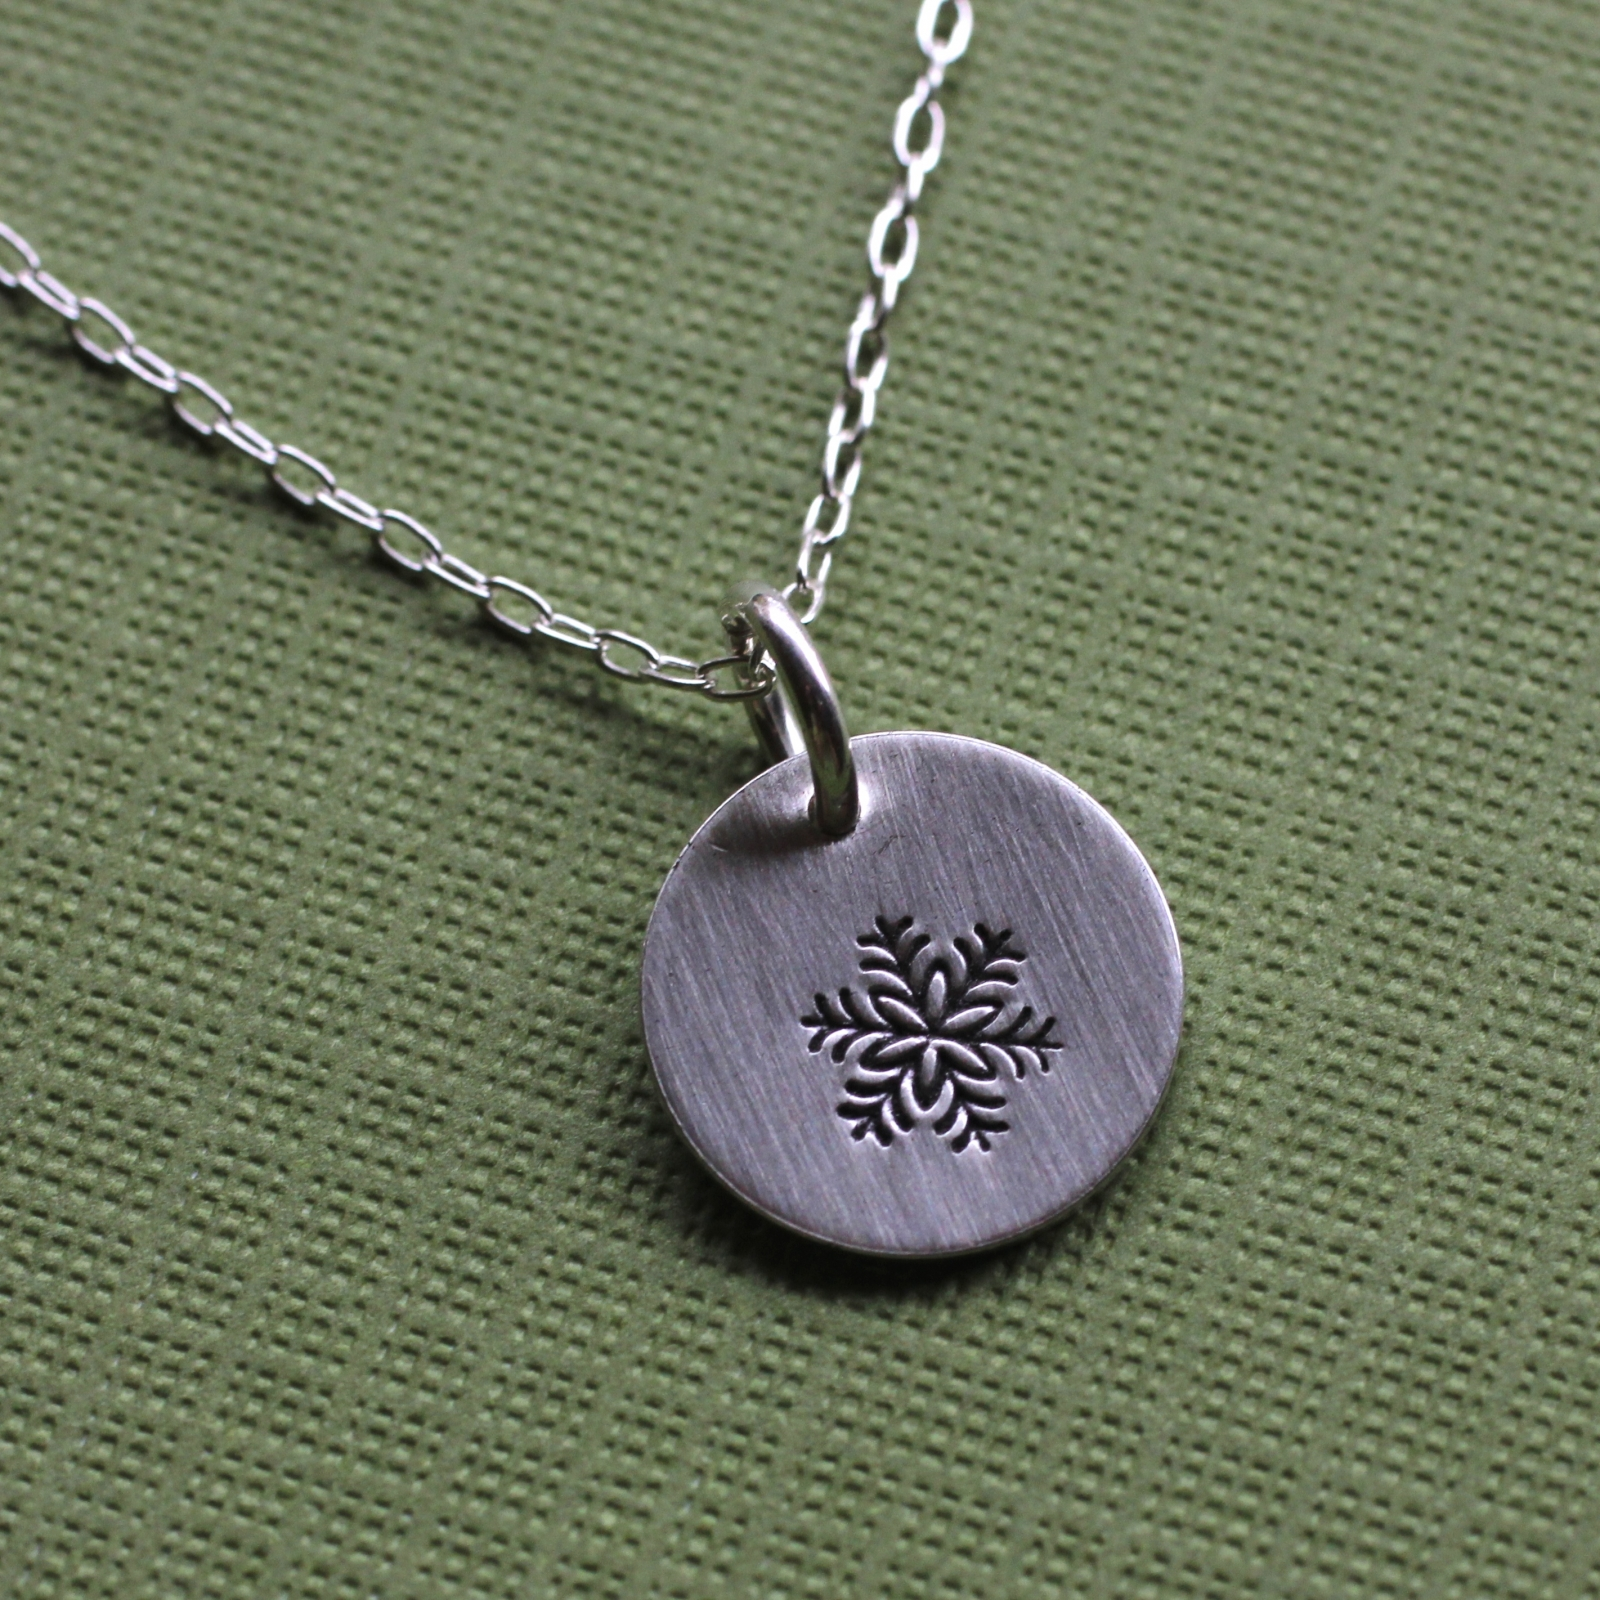 silver jewelry snowflake sterling chain petite az necklace st bling pendant with childrens